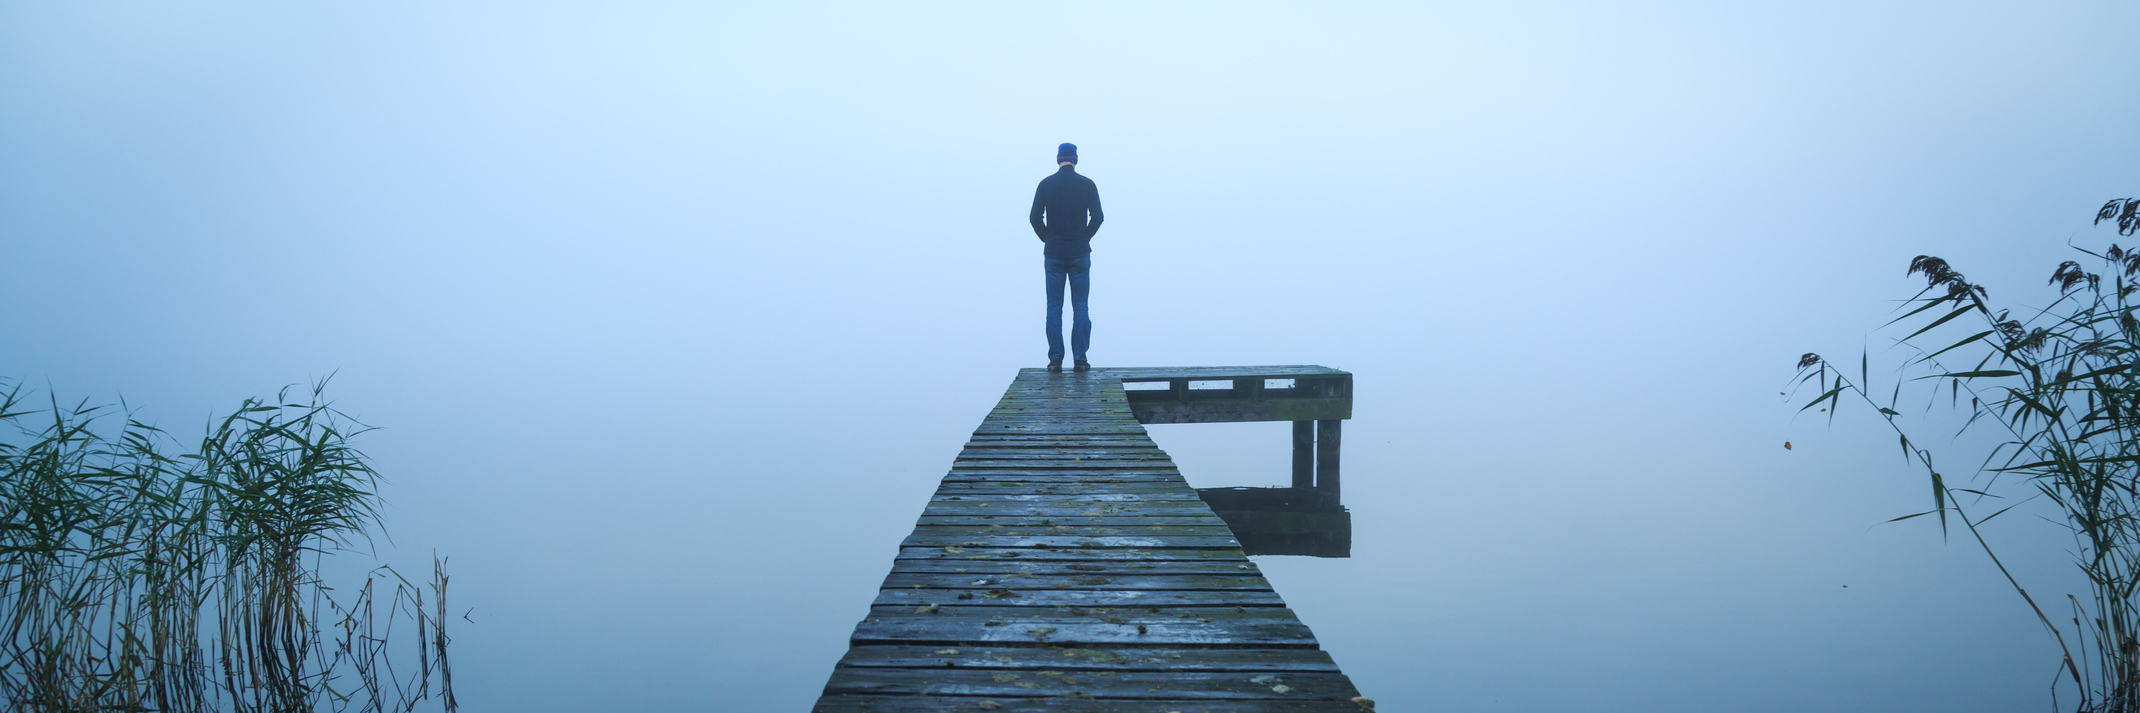 man standing alone on jetty over water on foggy day